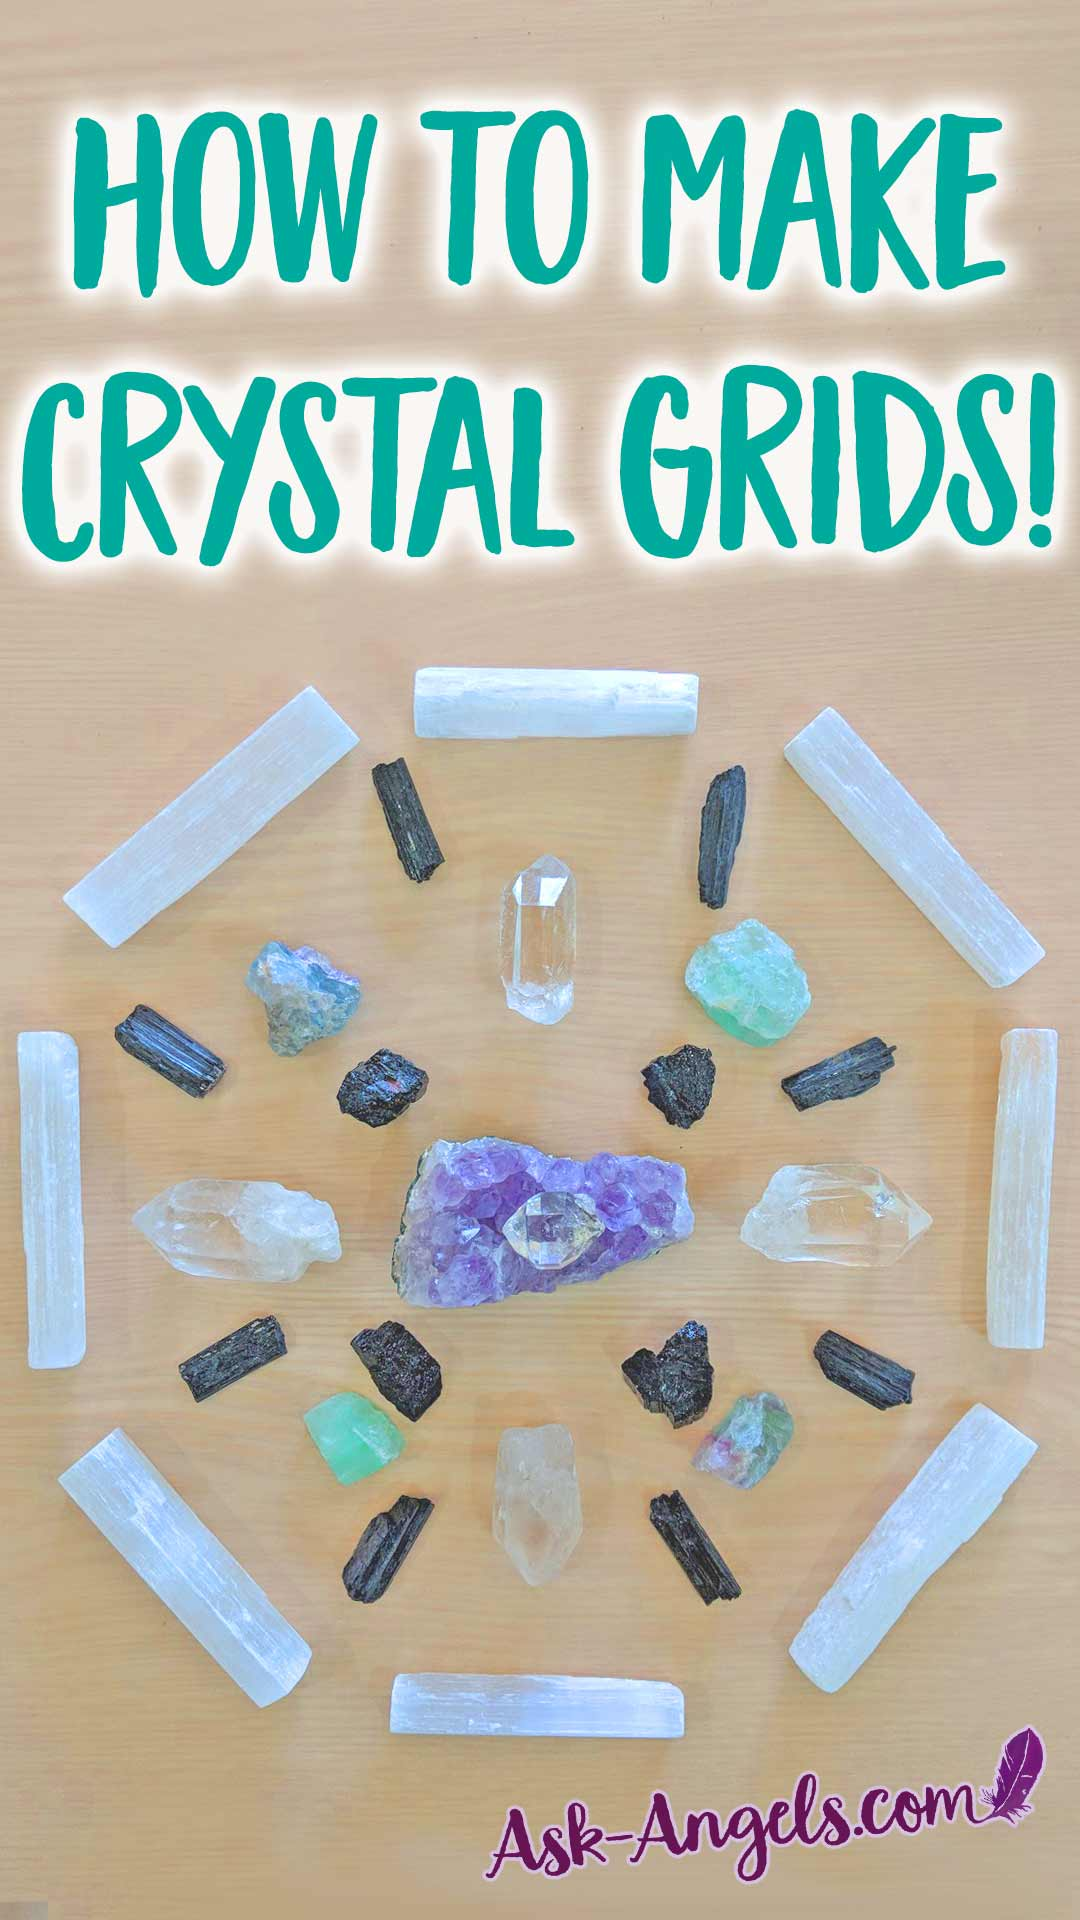 Learn how to make crystal grids to focus your manifestation ability and call forth blessings into your life experience. #crystalgrid